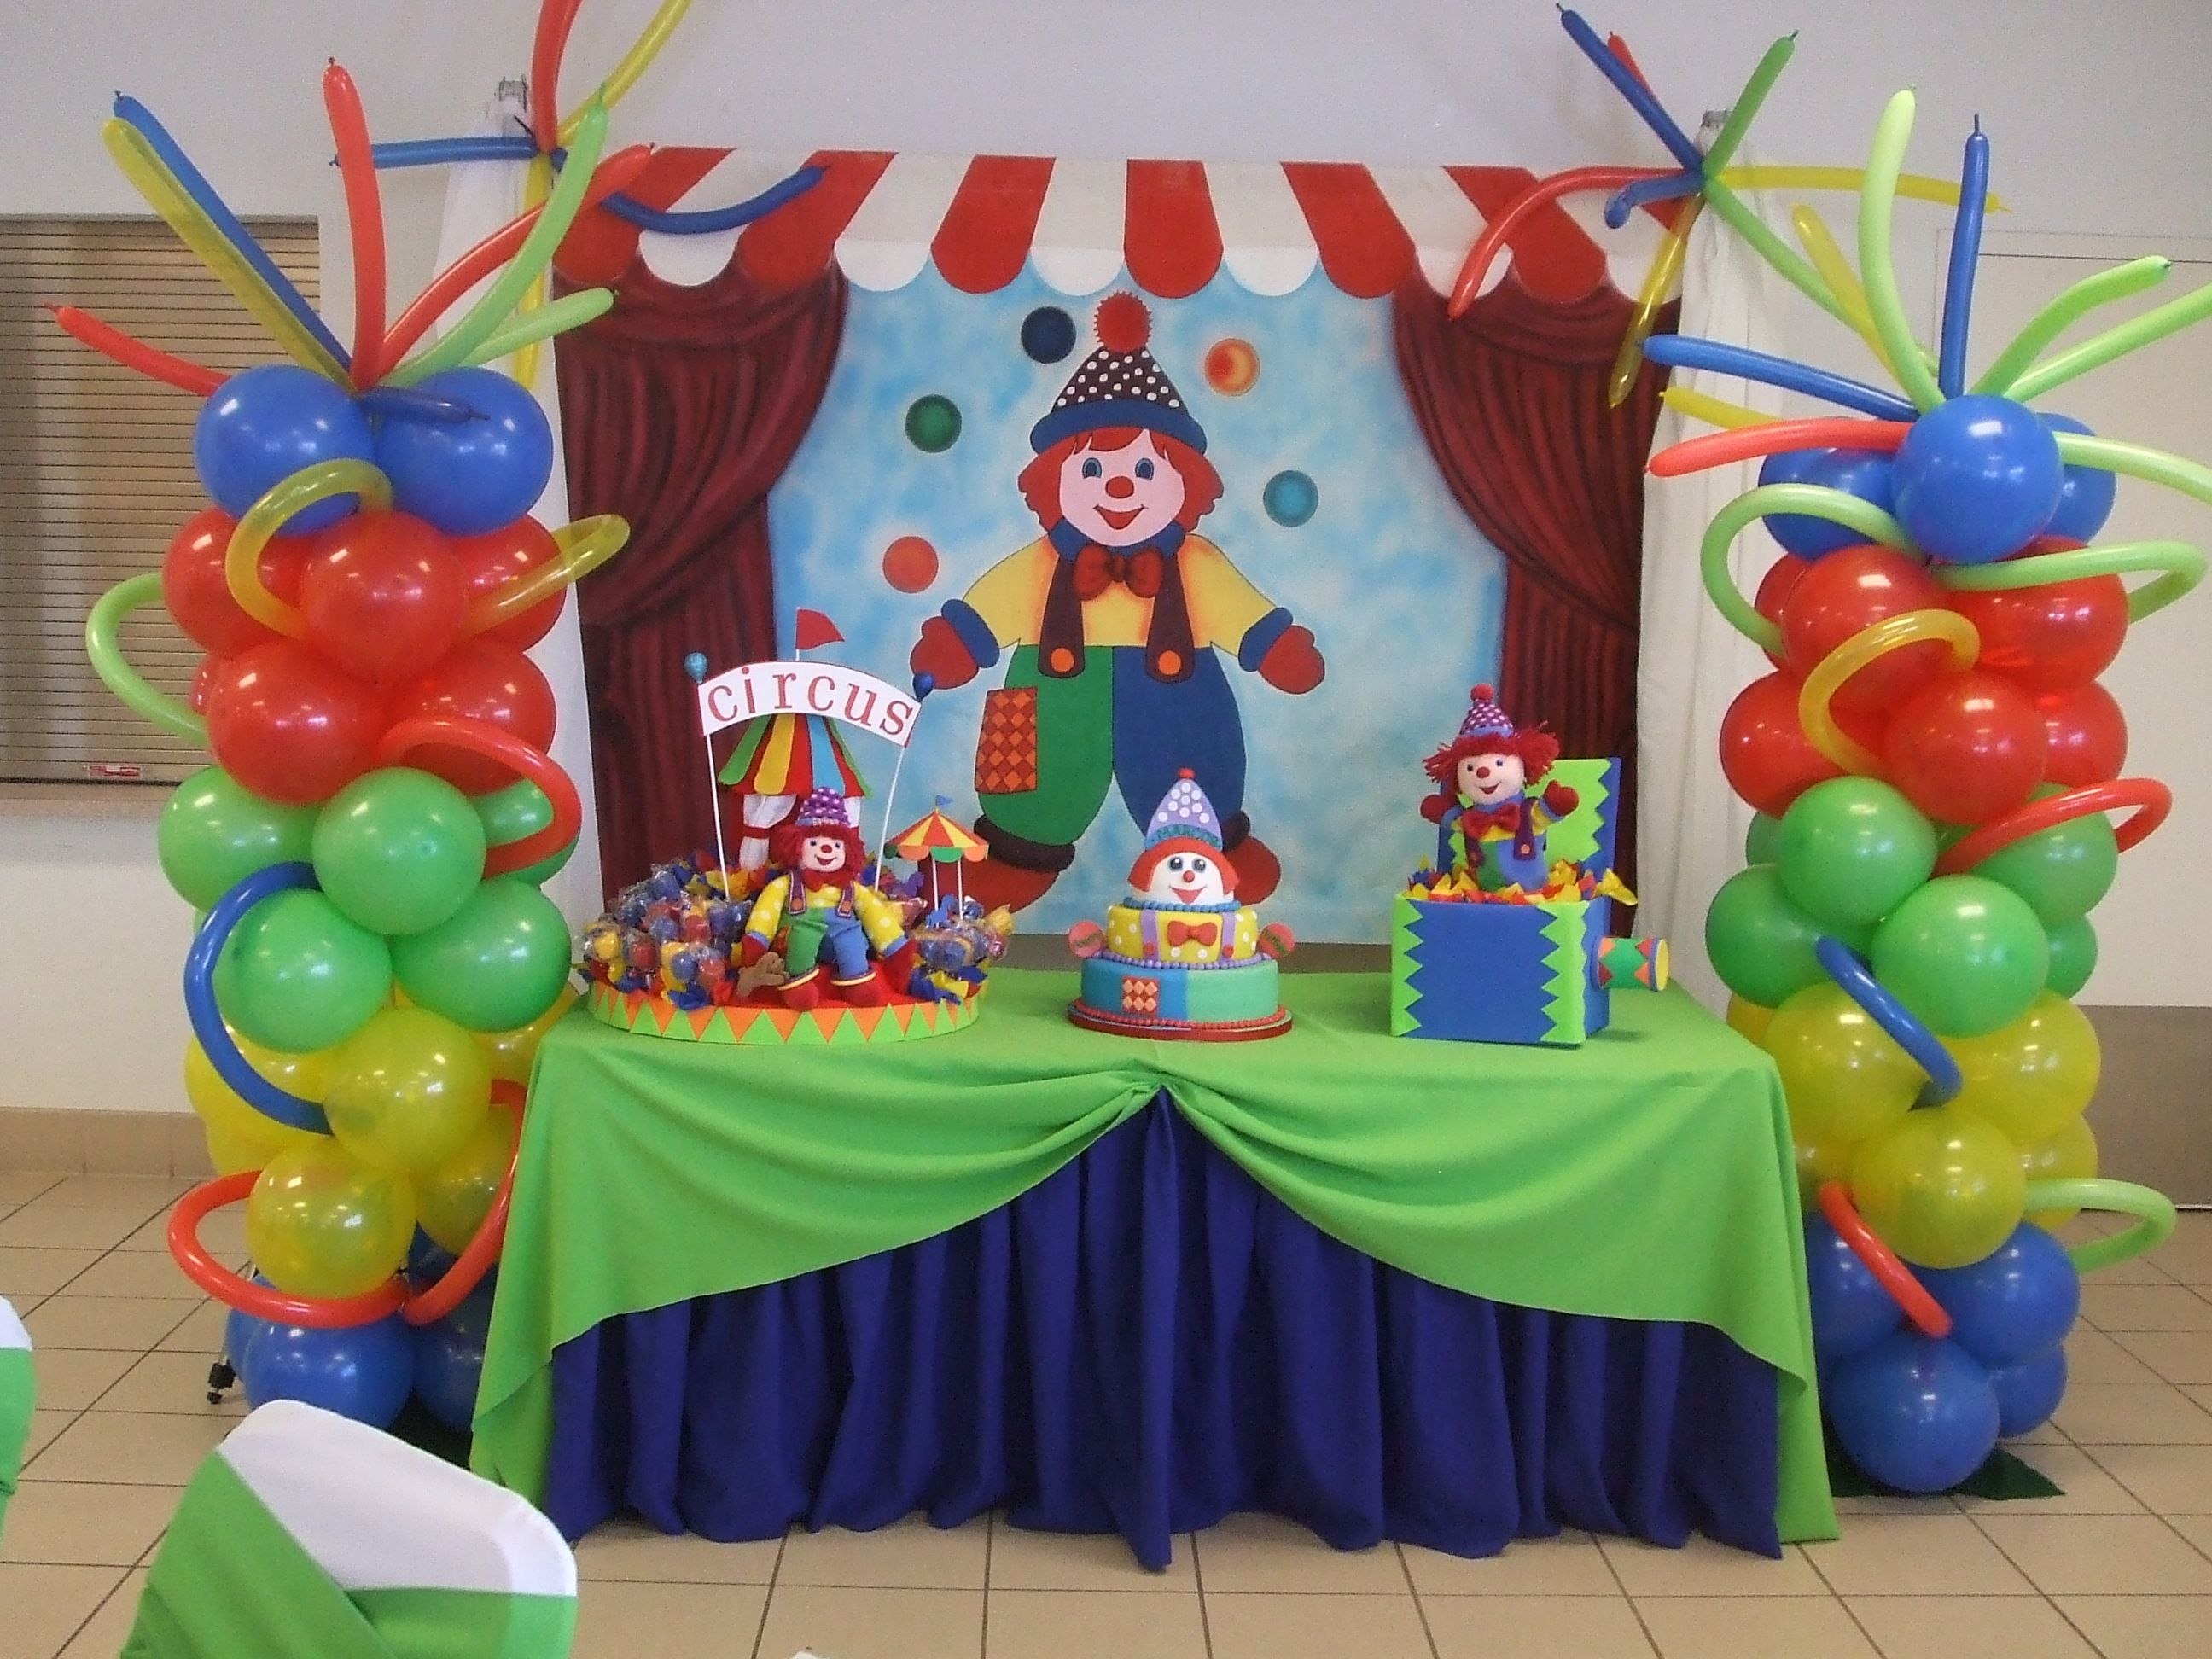 Party balloons decorations - Party Centerpieces Circus Decorations Balloon